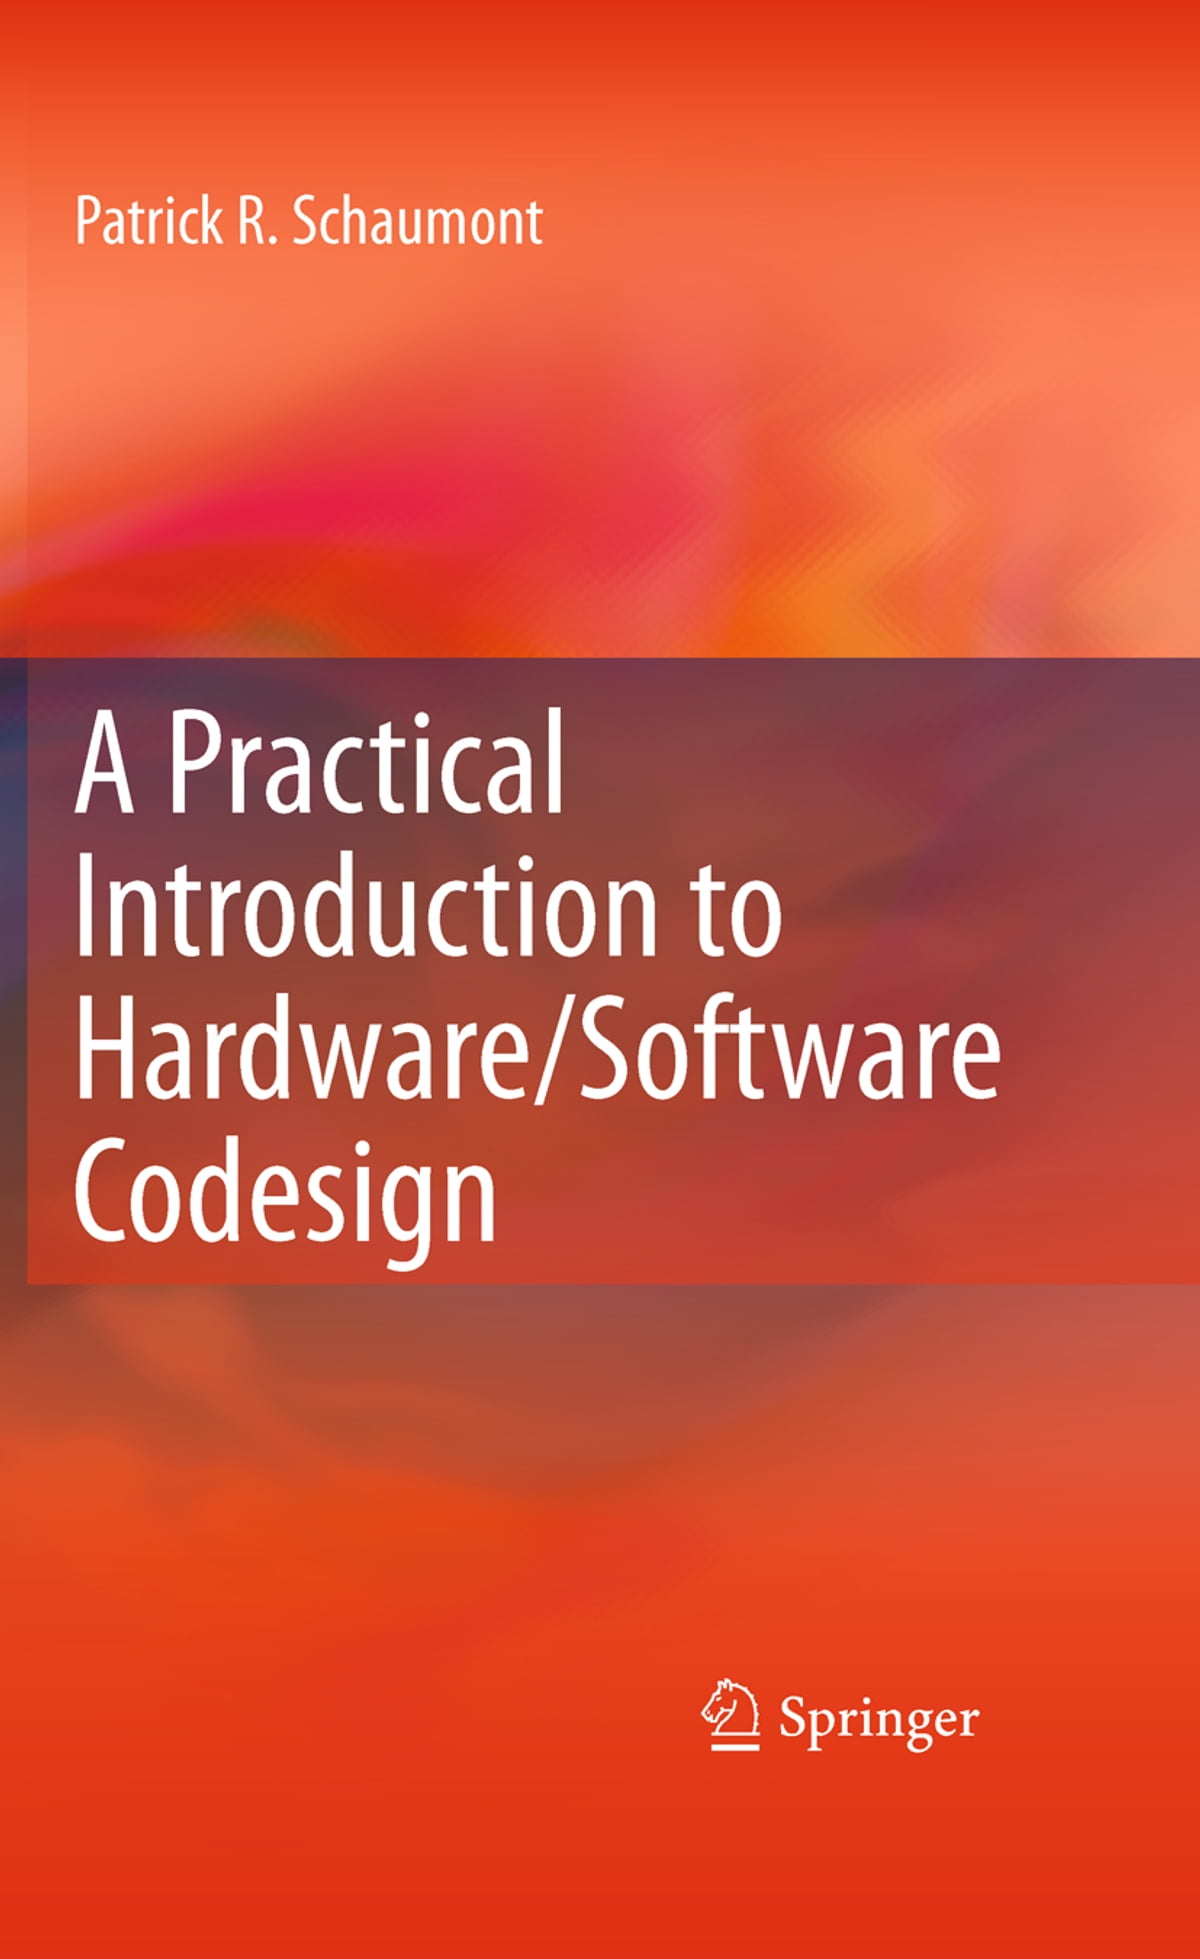 a practical introduction to hardware software codesign ebook free download